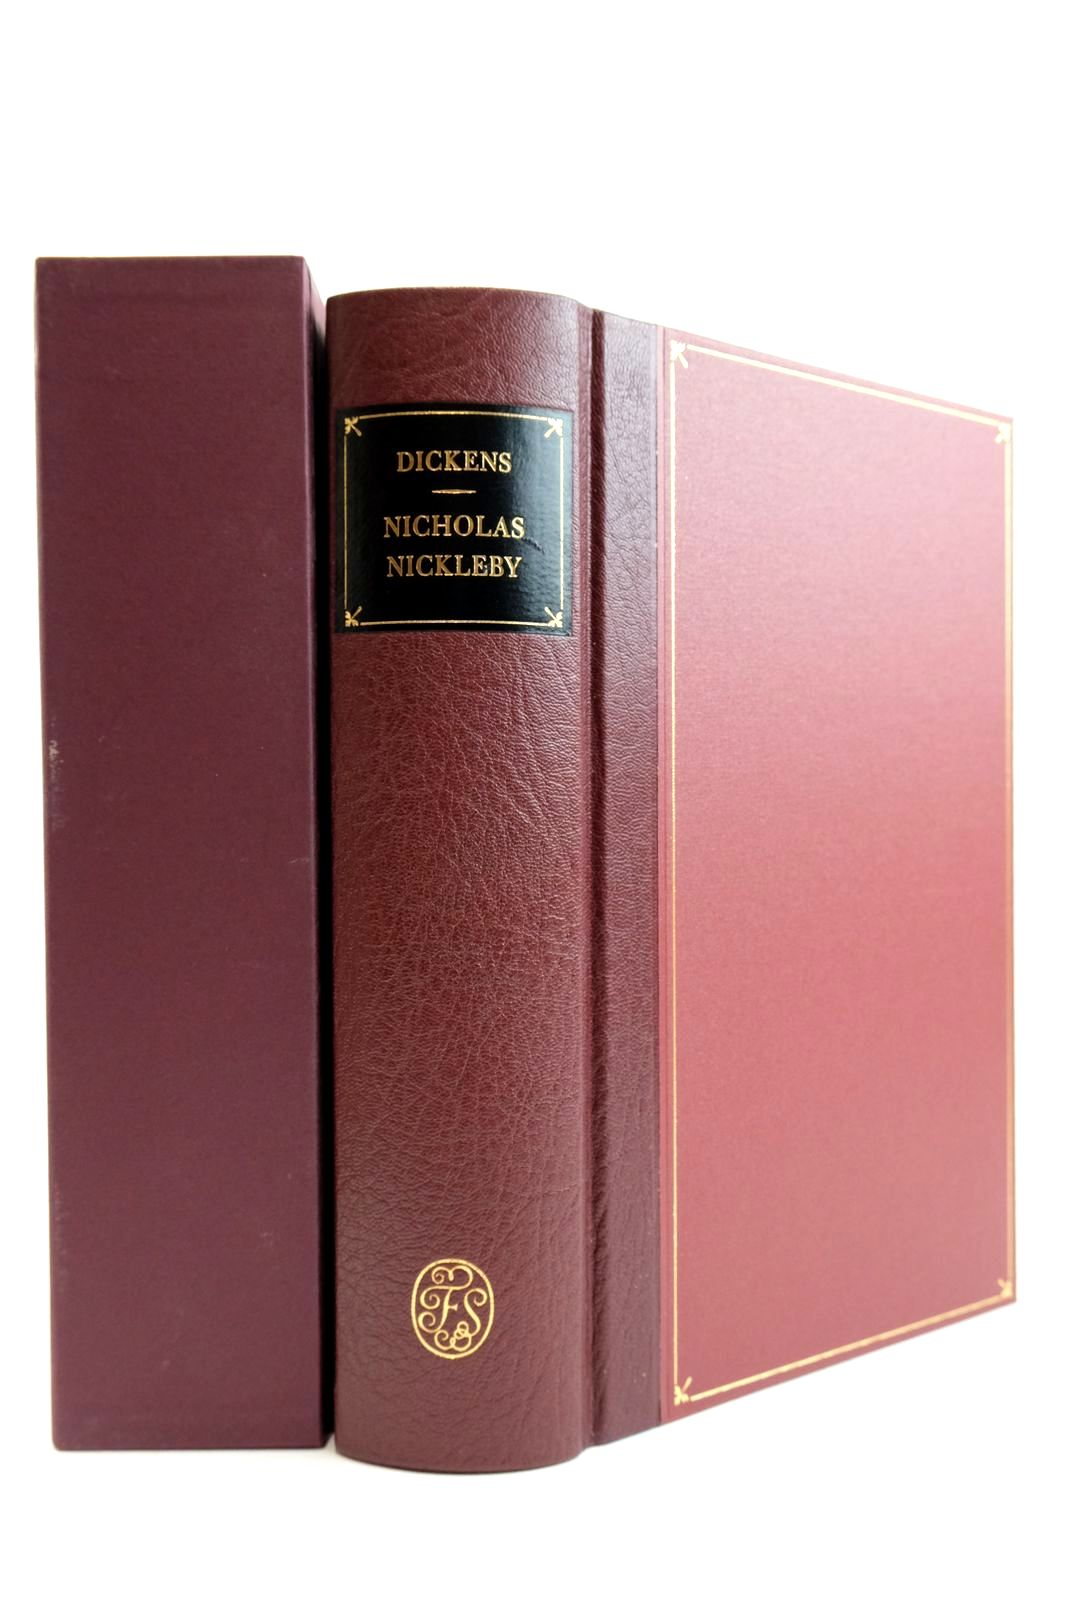 Photo of NICHOLAS NICKLEBY written by Dickens, Charles Callow, Simon illustrated by Phiz,  published by Folio Society (STOCK CODE: 2132429)  for sale by Stella & Rose's Books